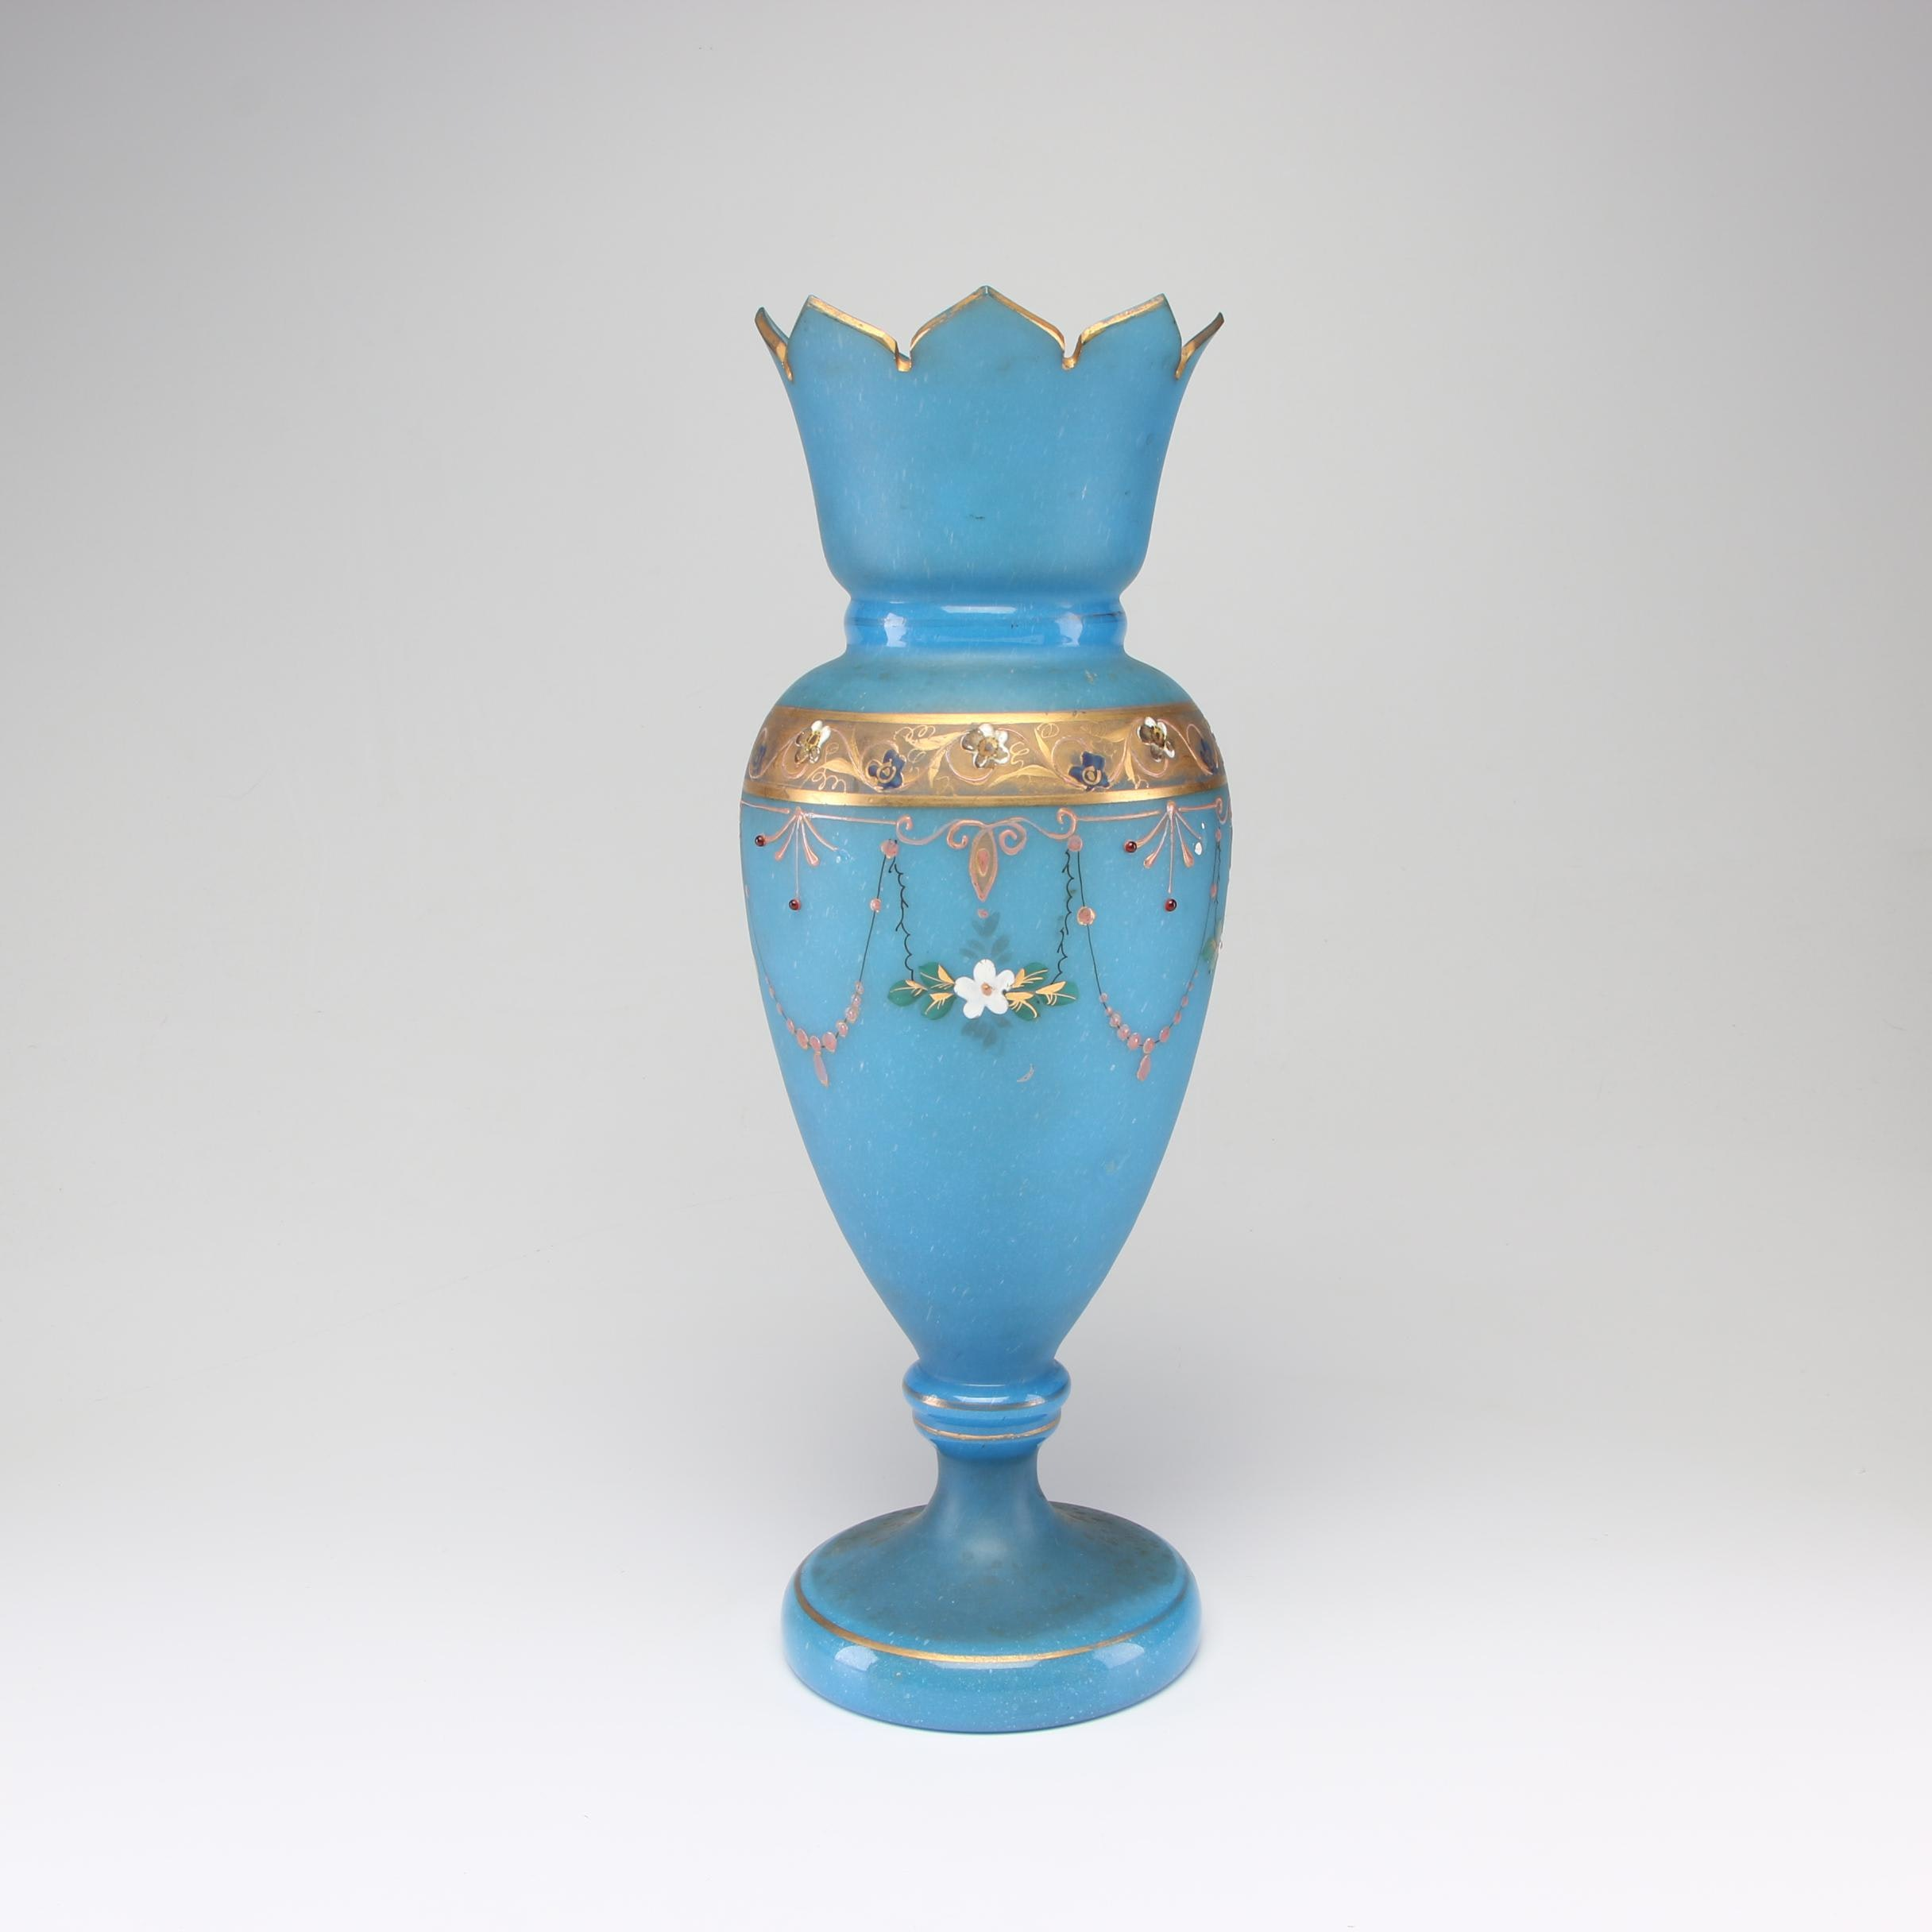 Bohemian Hand-Painted Robin's Egg Blue Vase with Gilt Accents